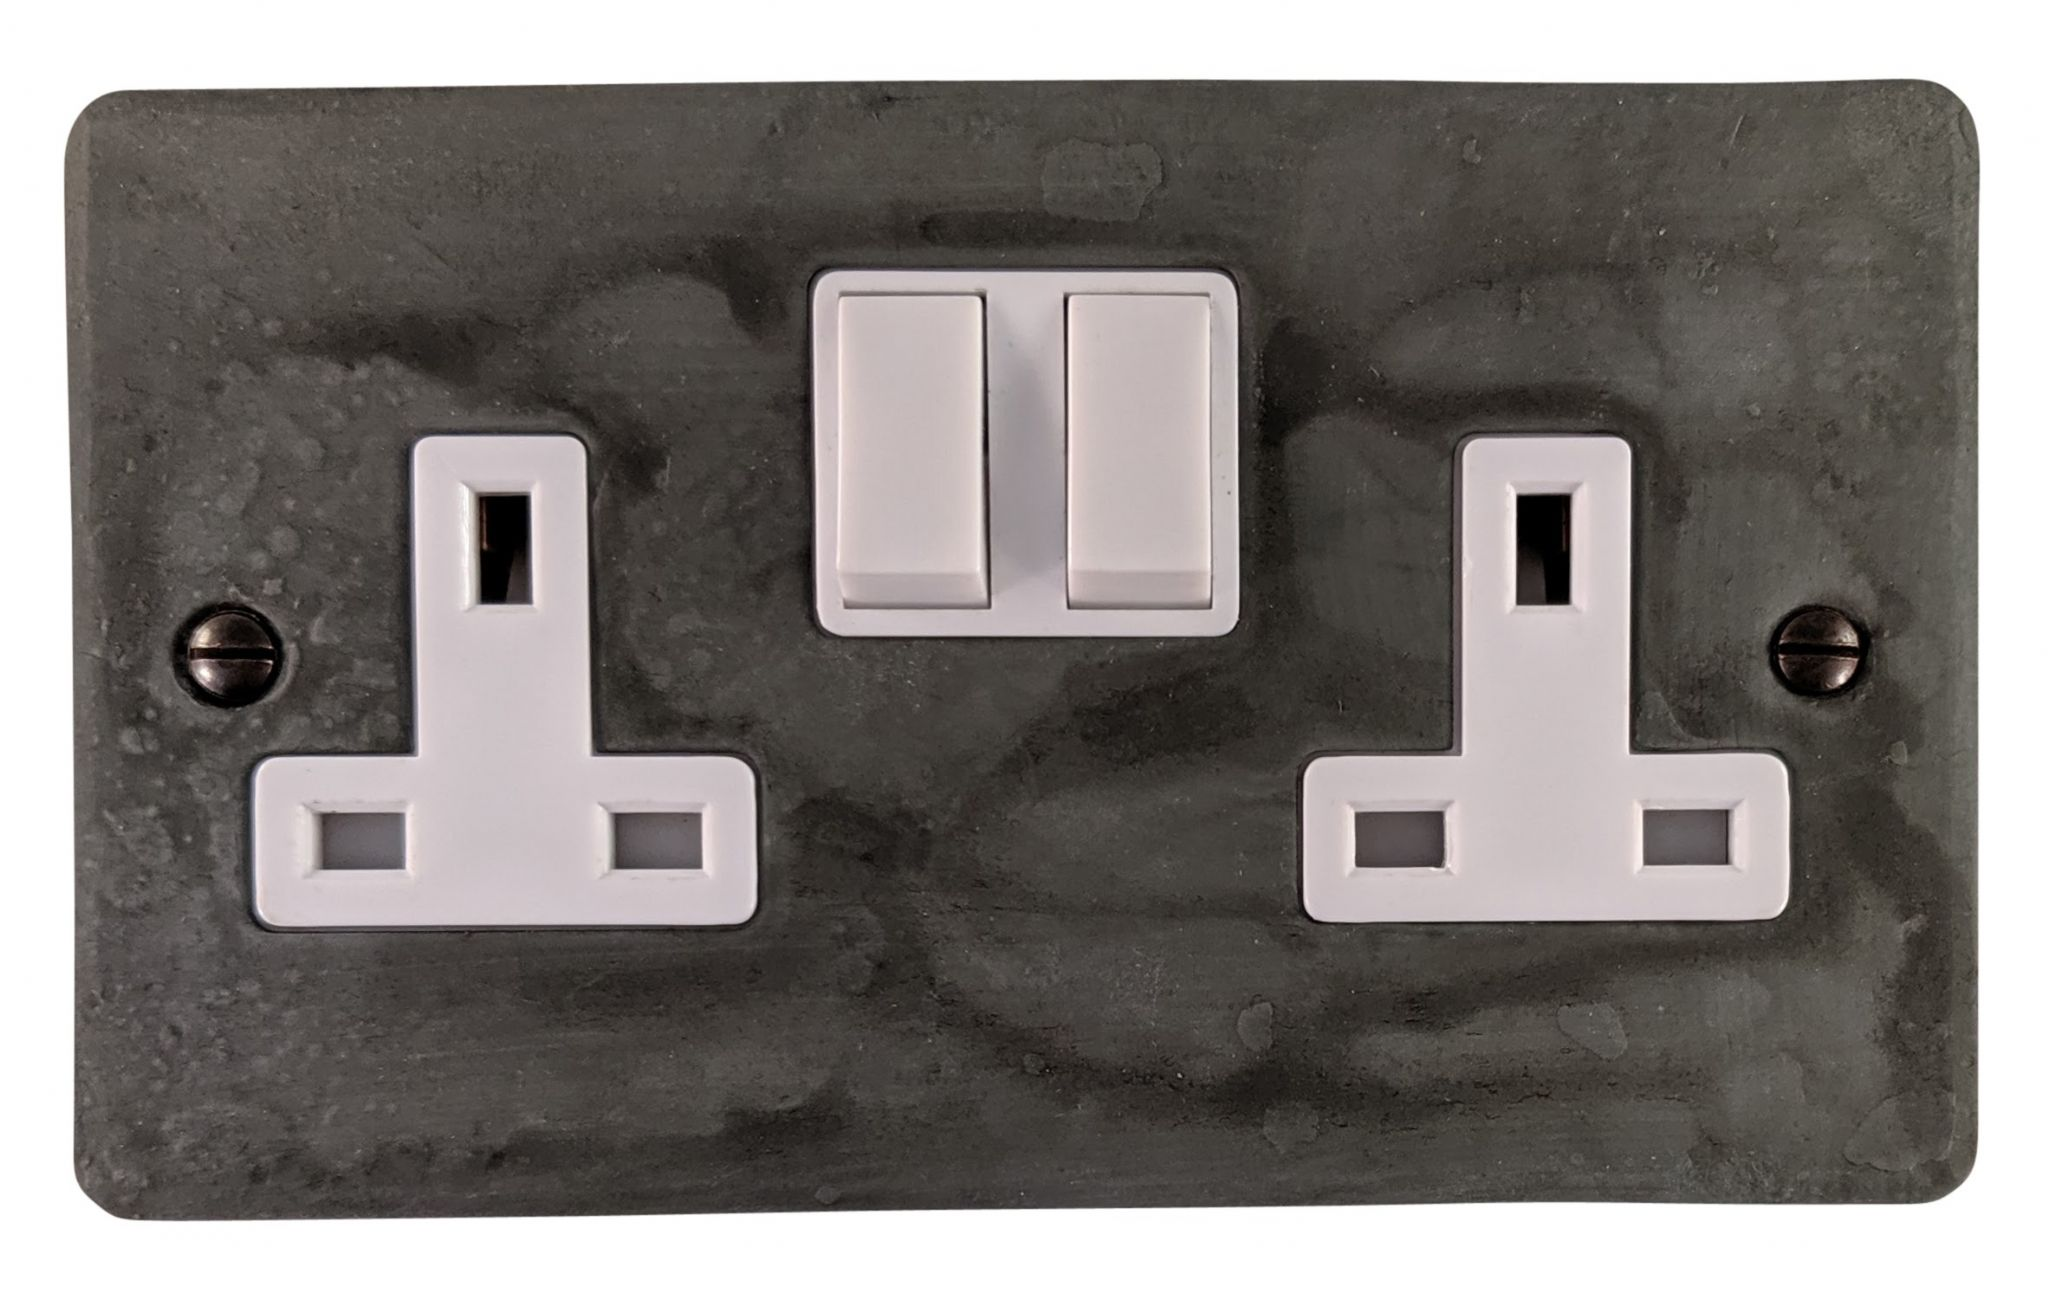 G&H FRP10W Flat Plate Rustic Pewter 2 Gang Double 13A Switched Plug Socket